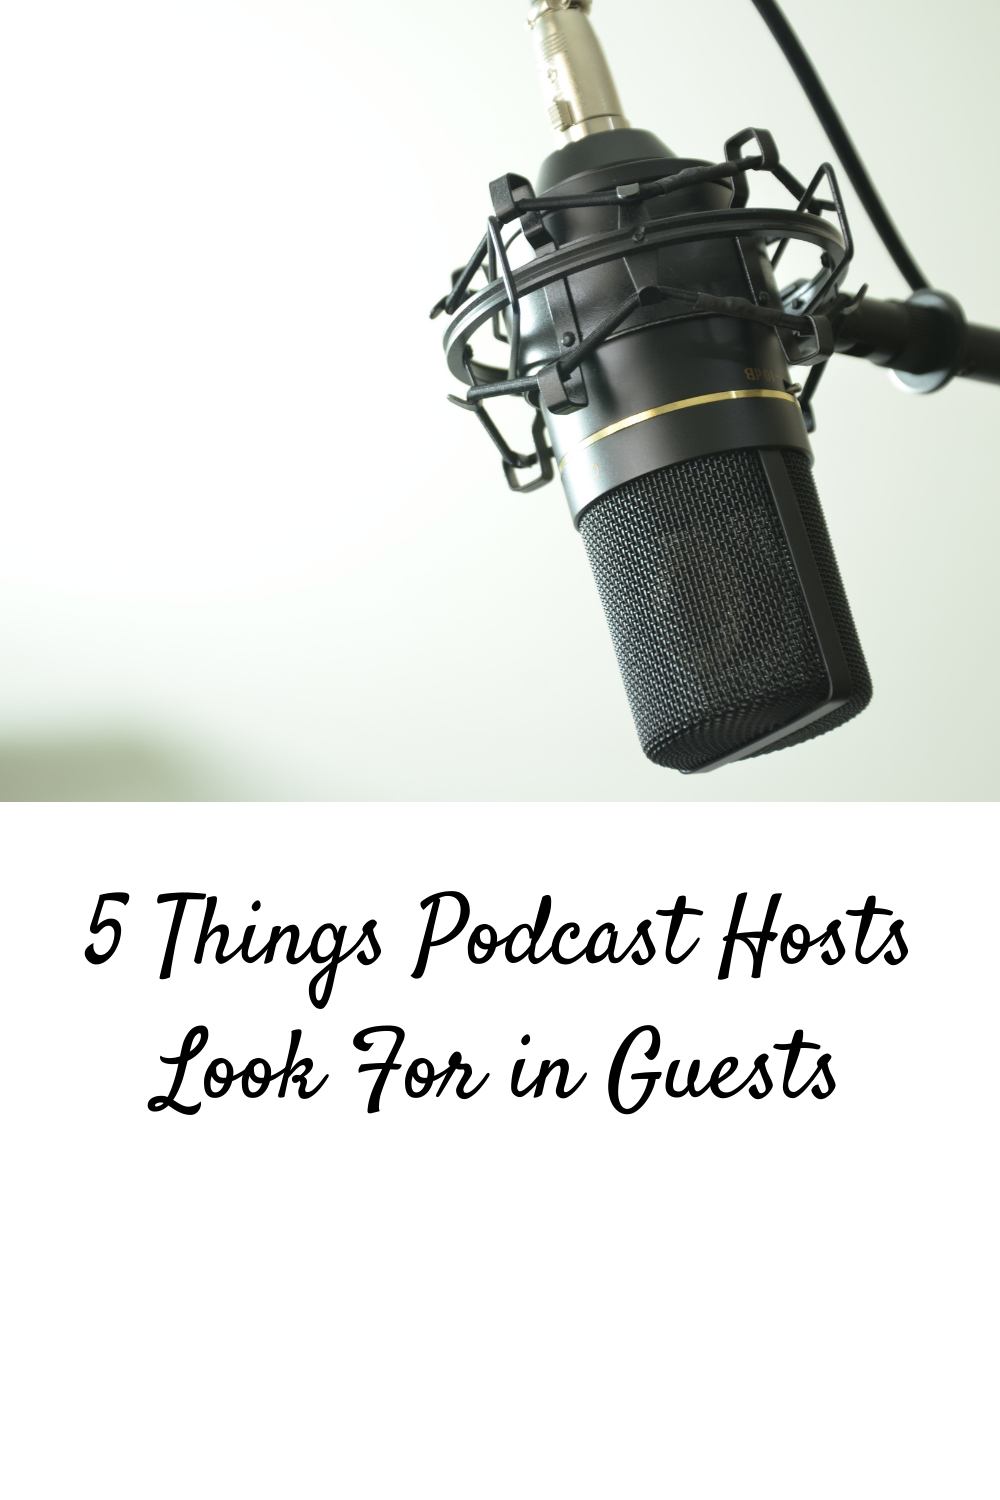 5 Things Podcast Hosts Look For in Guests